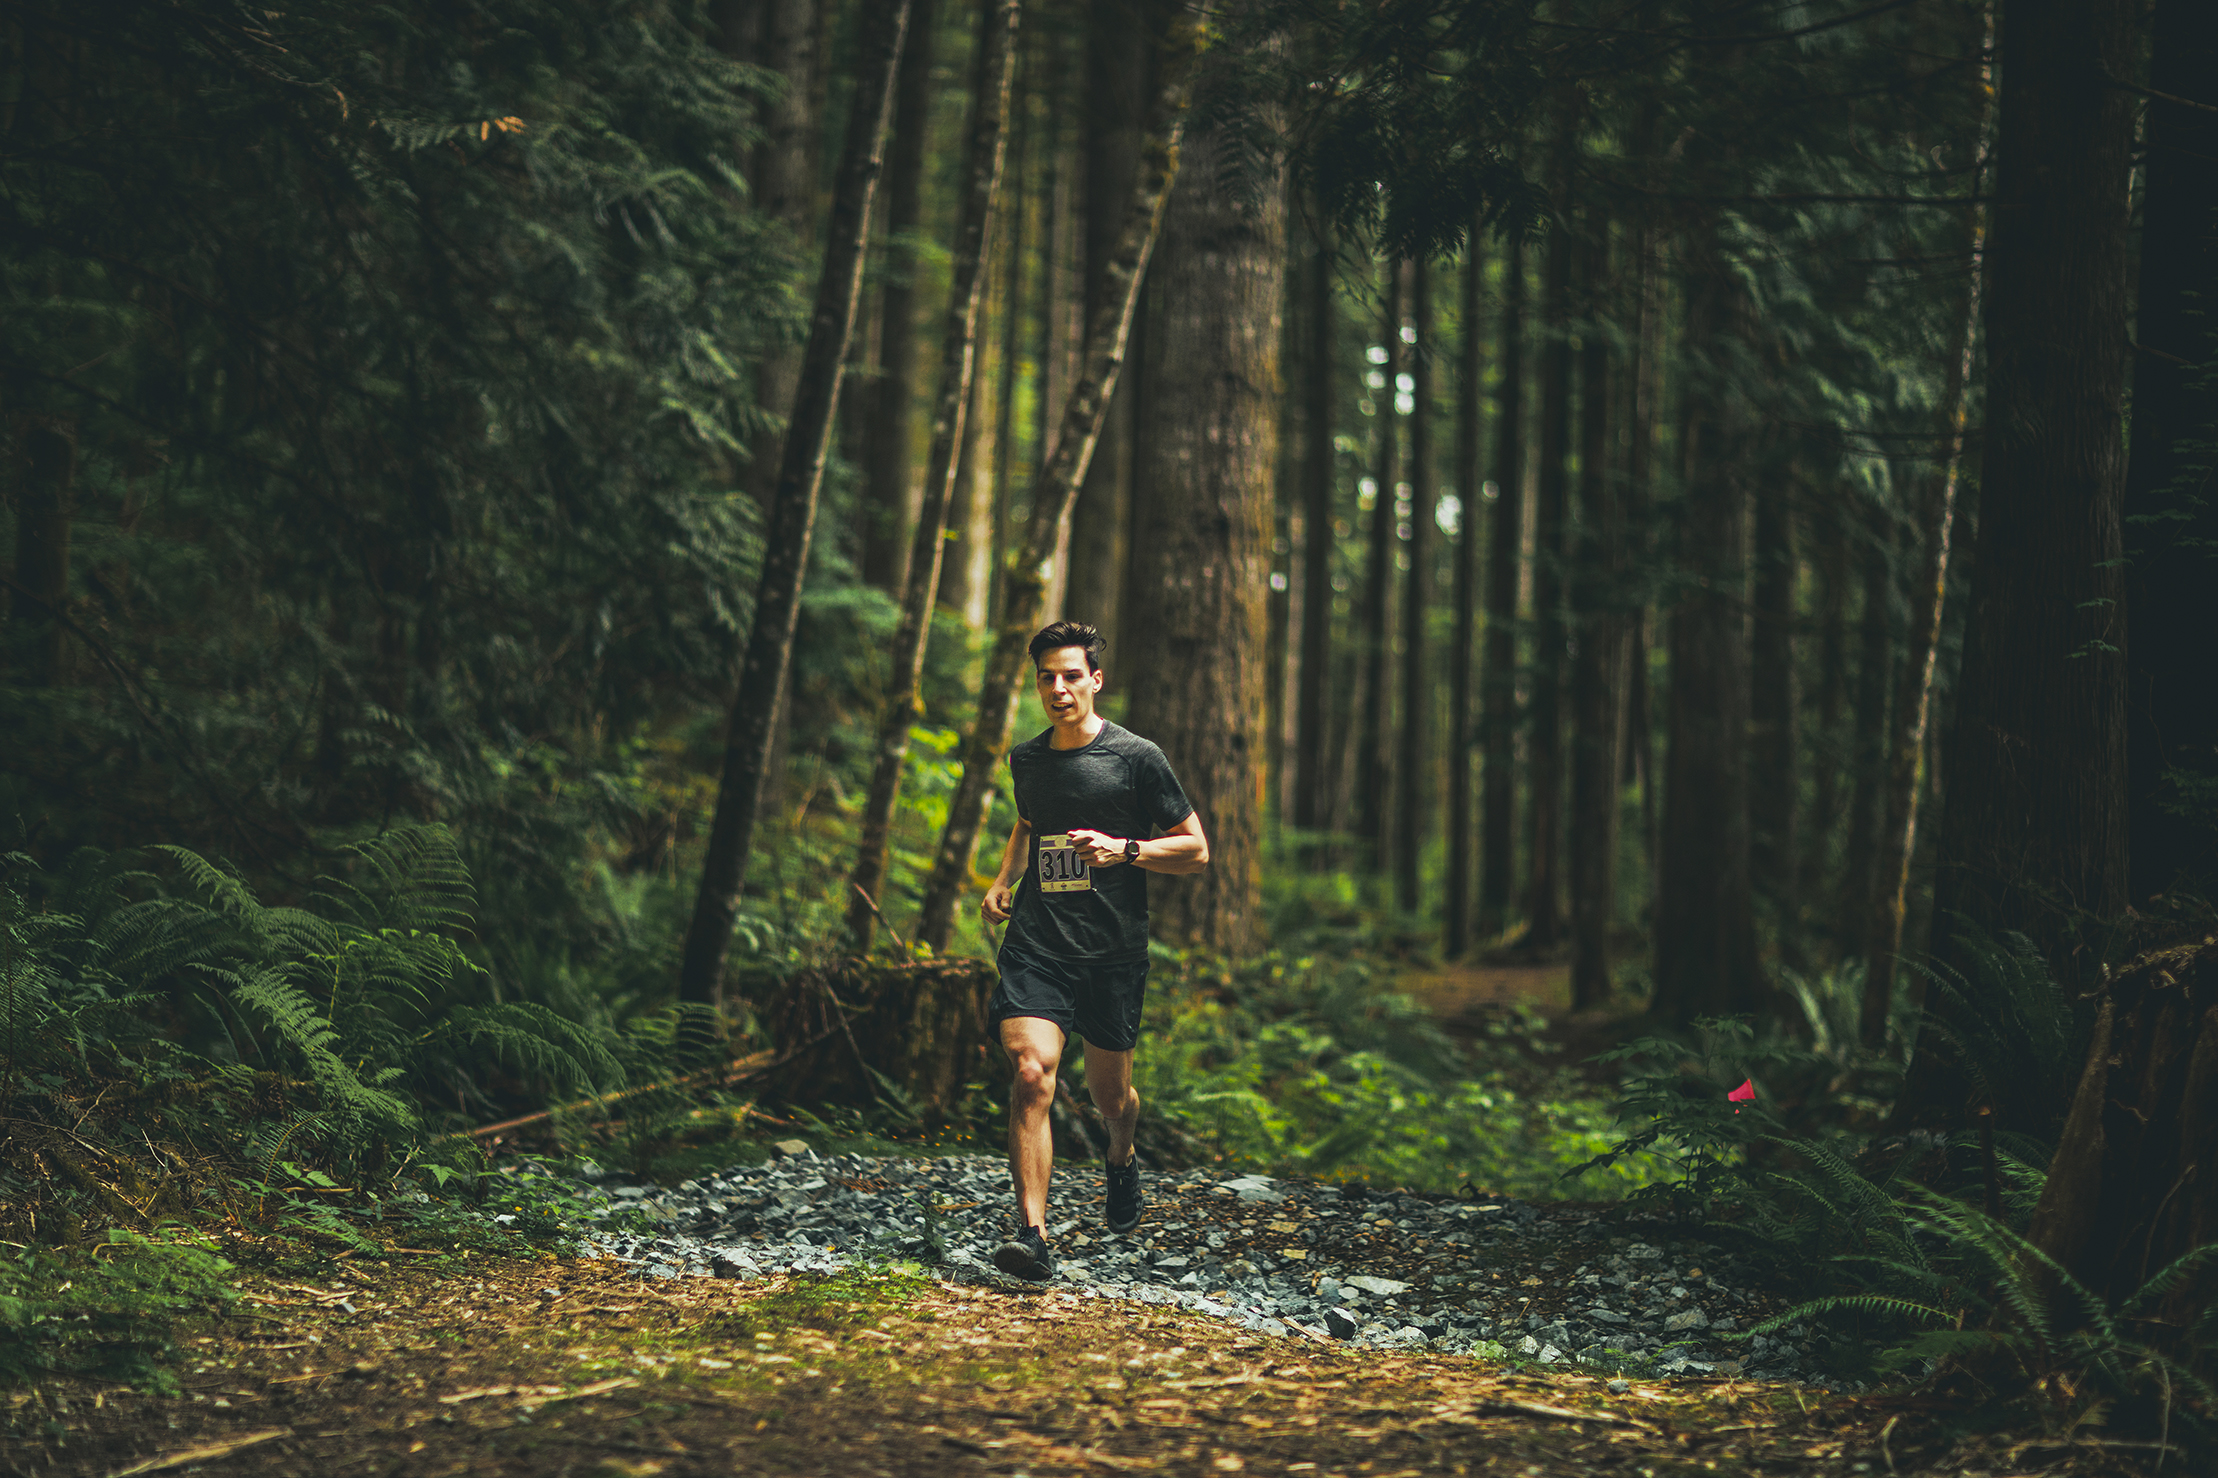 Fraser Valley Trail Races - Bear Mountain - IMG_2113 by Brice Ferre Studio - Vancouver Portrait Adventure and Athlete Photographer.jpg